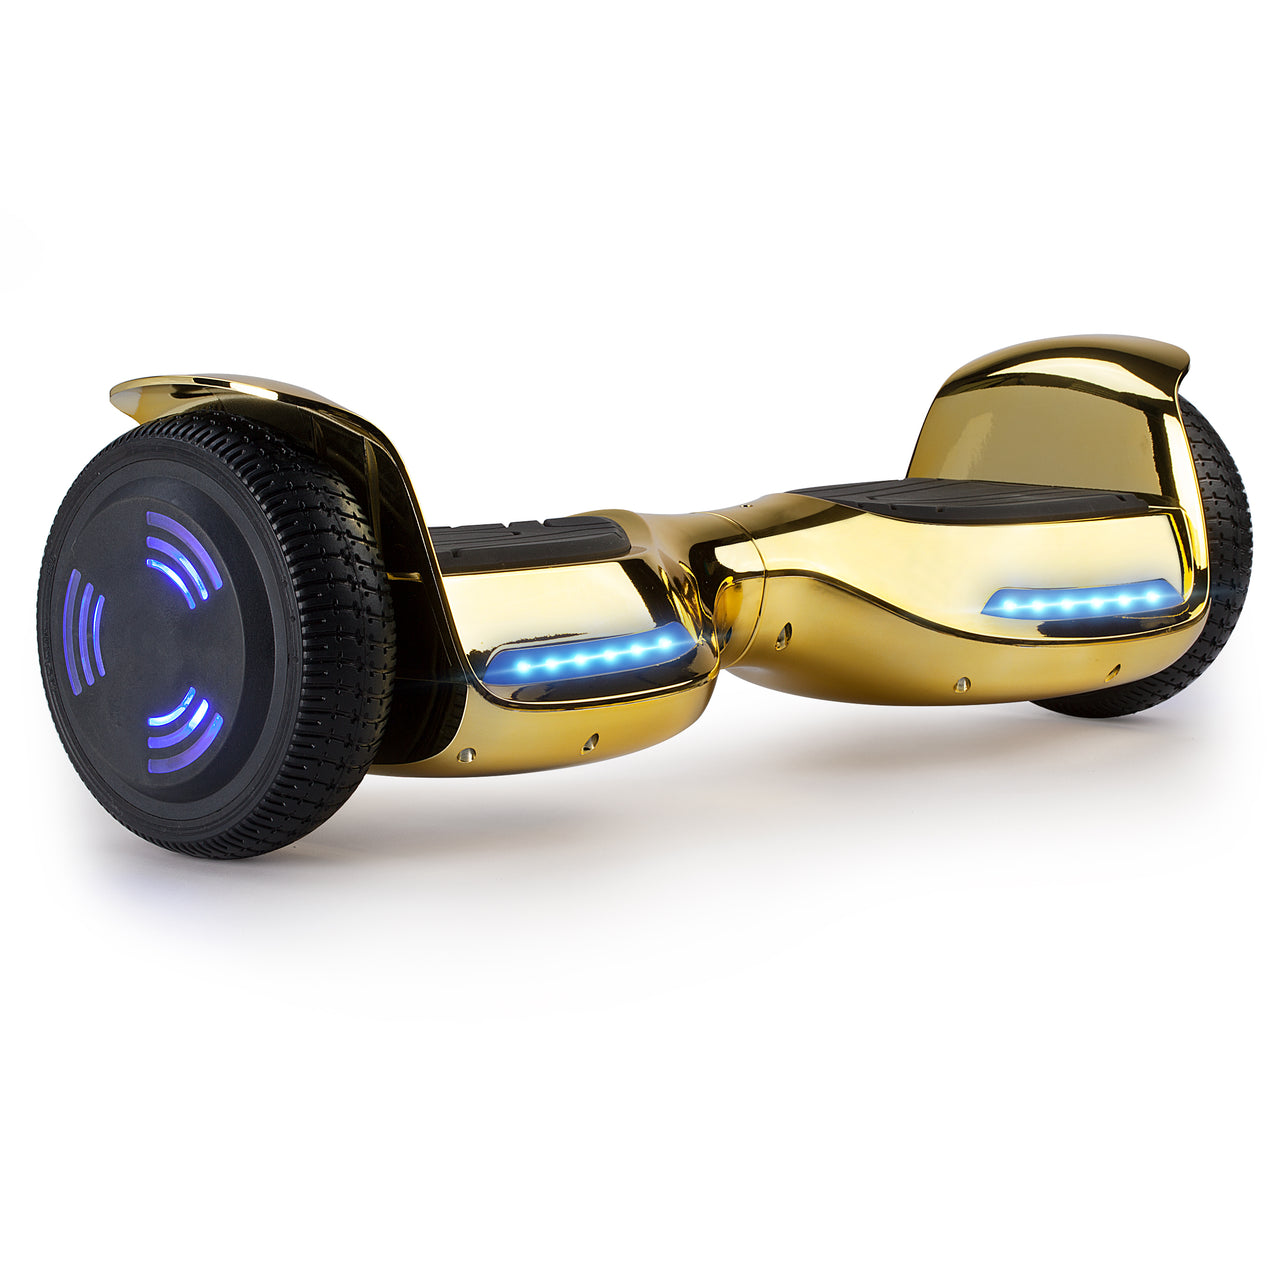 XPRIT Turtle Series Hoverboard Chrome Gold, 6.5""